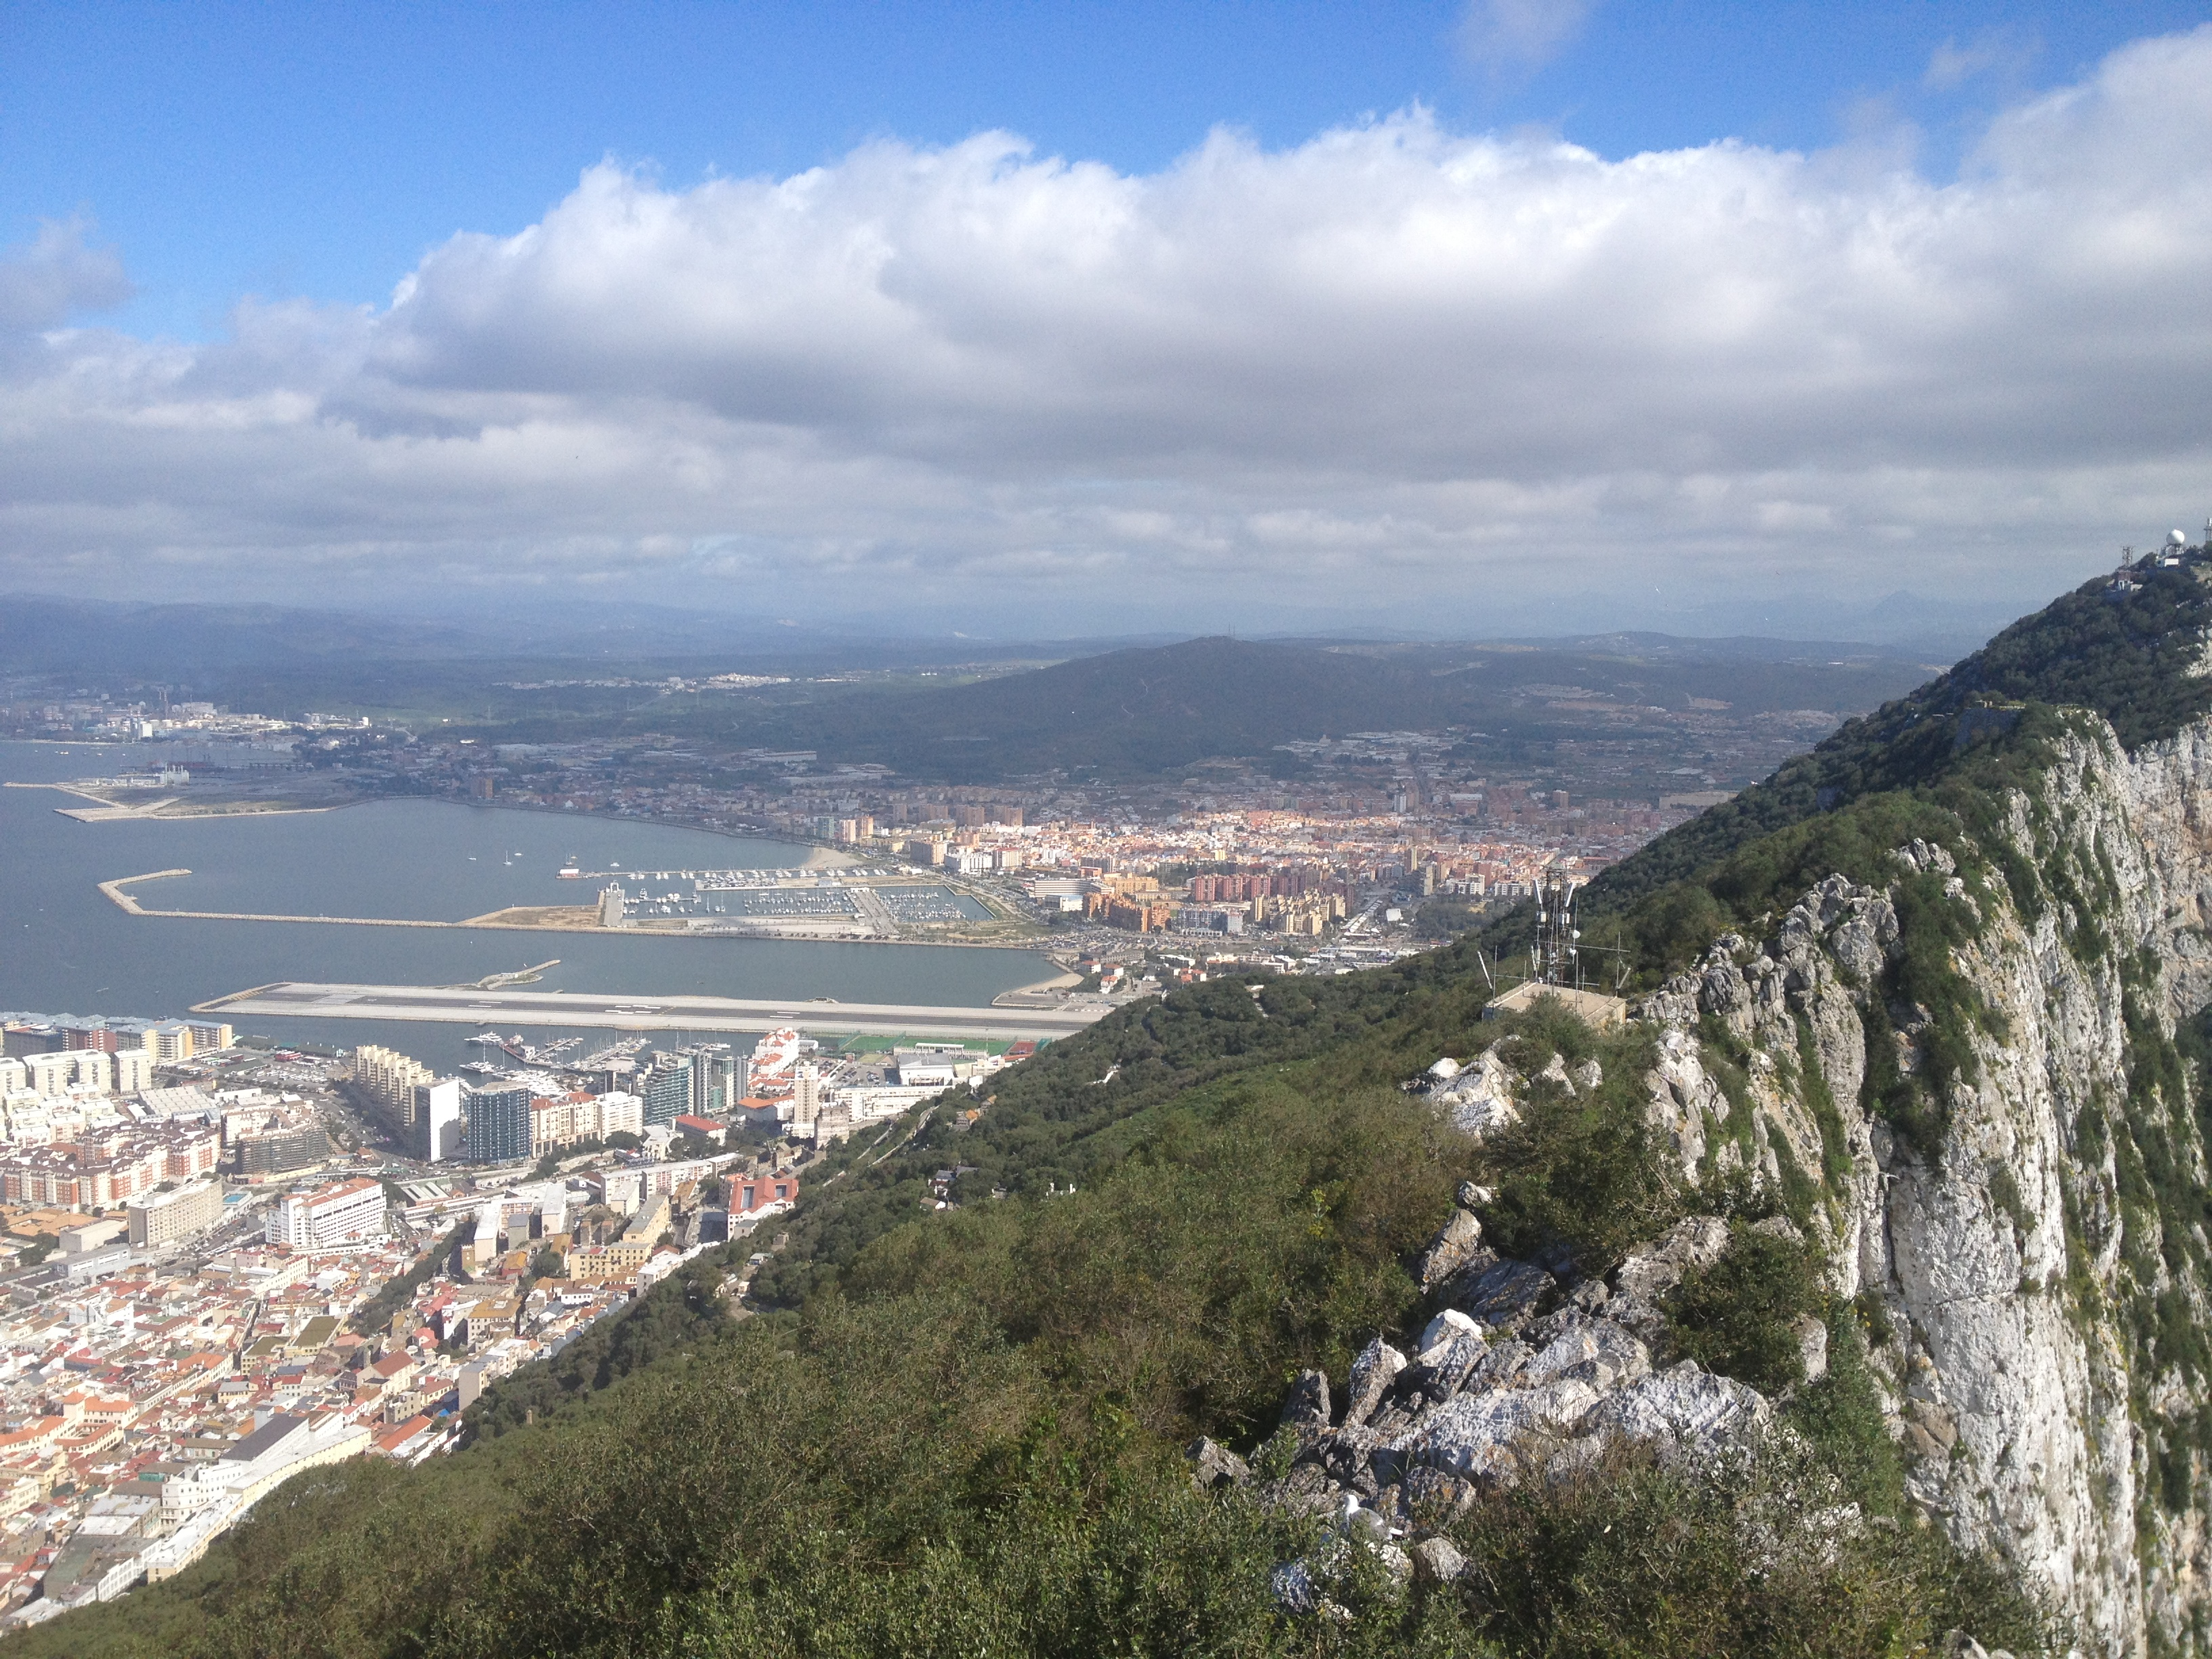 A view from The Rock of Gibraltar looking down onto the town, home to 30,000 people, made up of a mixture of Gibraltarians, British, Spanish, Arabic and Far Easterners. Picture: Sean McKee